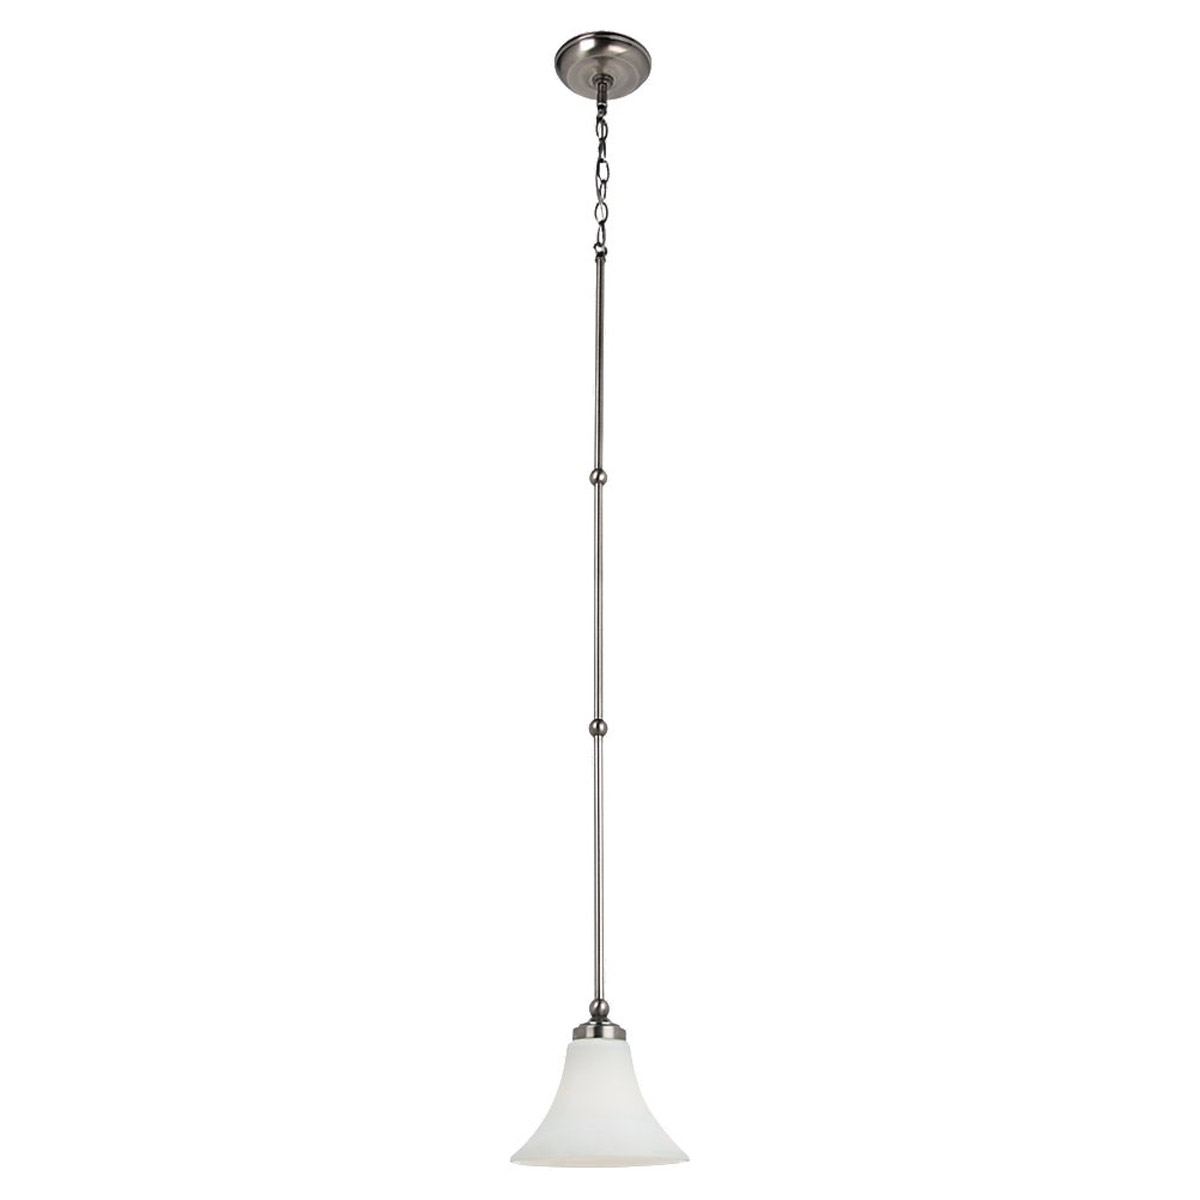 Sea Gull Lighting Montreal 1 Light Mini Pendant in Antique Brushed Nickel 61180-965